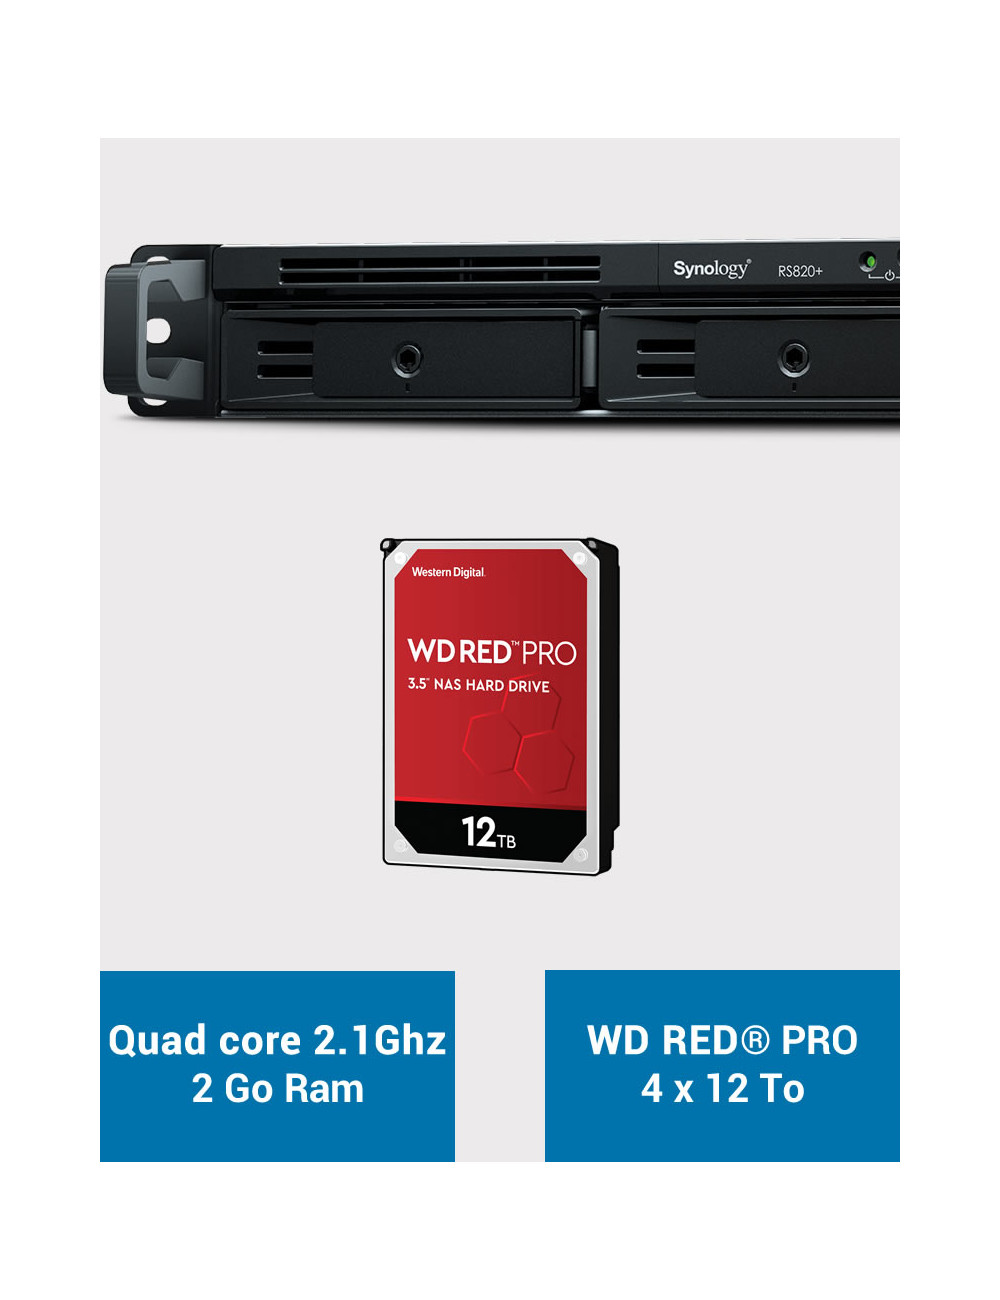 Synology RS820+ 2GB Serveur NAS WD RED PRO 48To (4x12To)